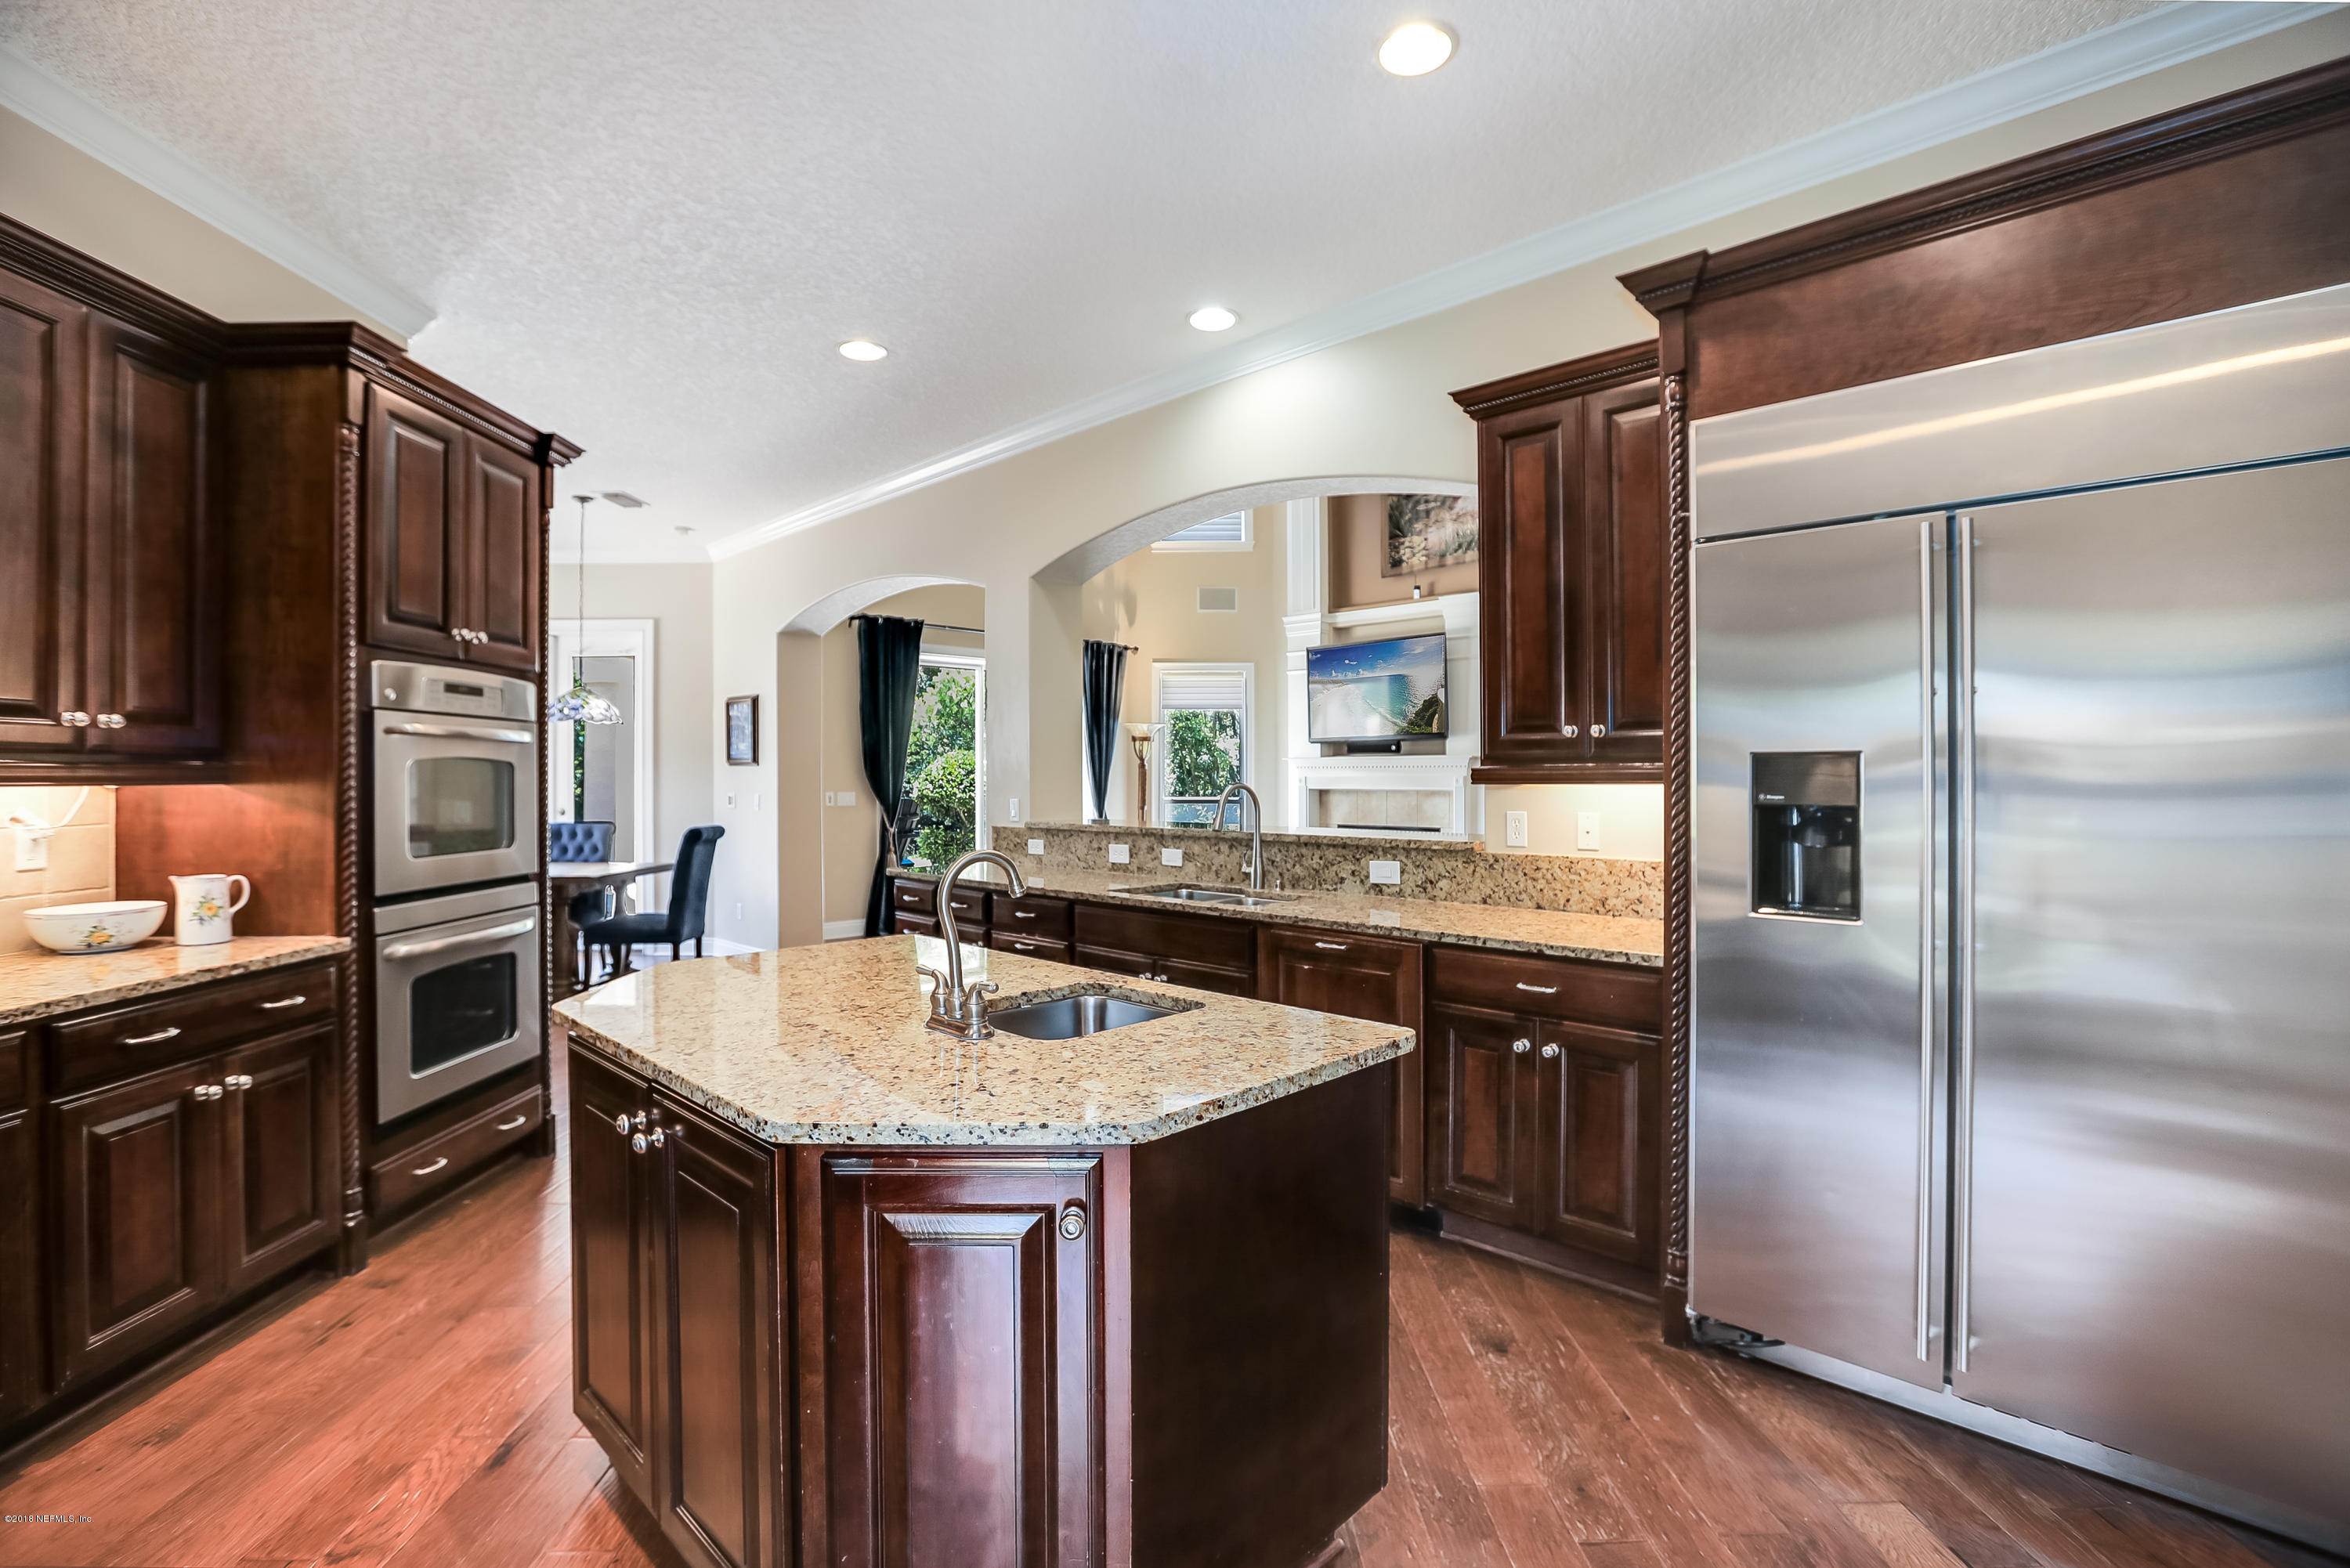 125 KING SAGO CT PONTE VEDRA BEACH - 13